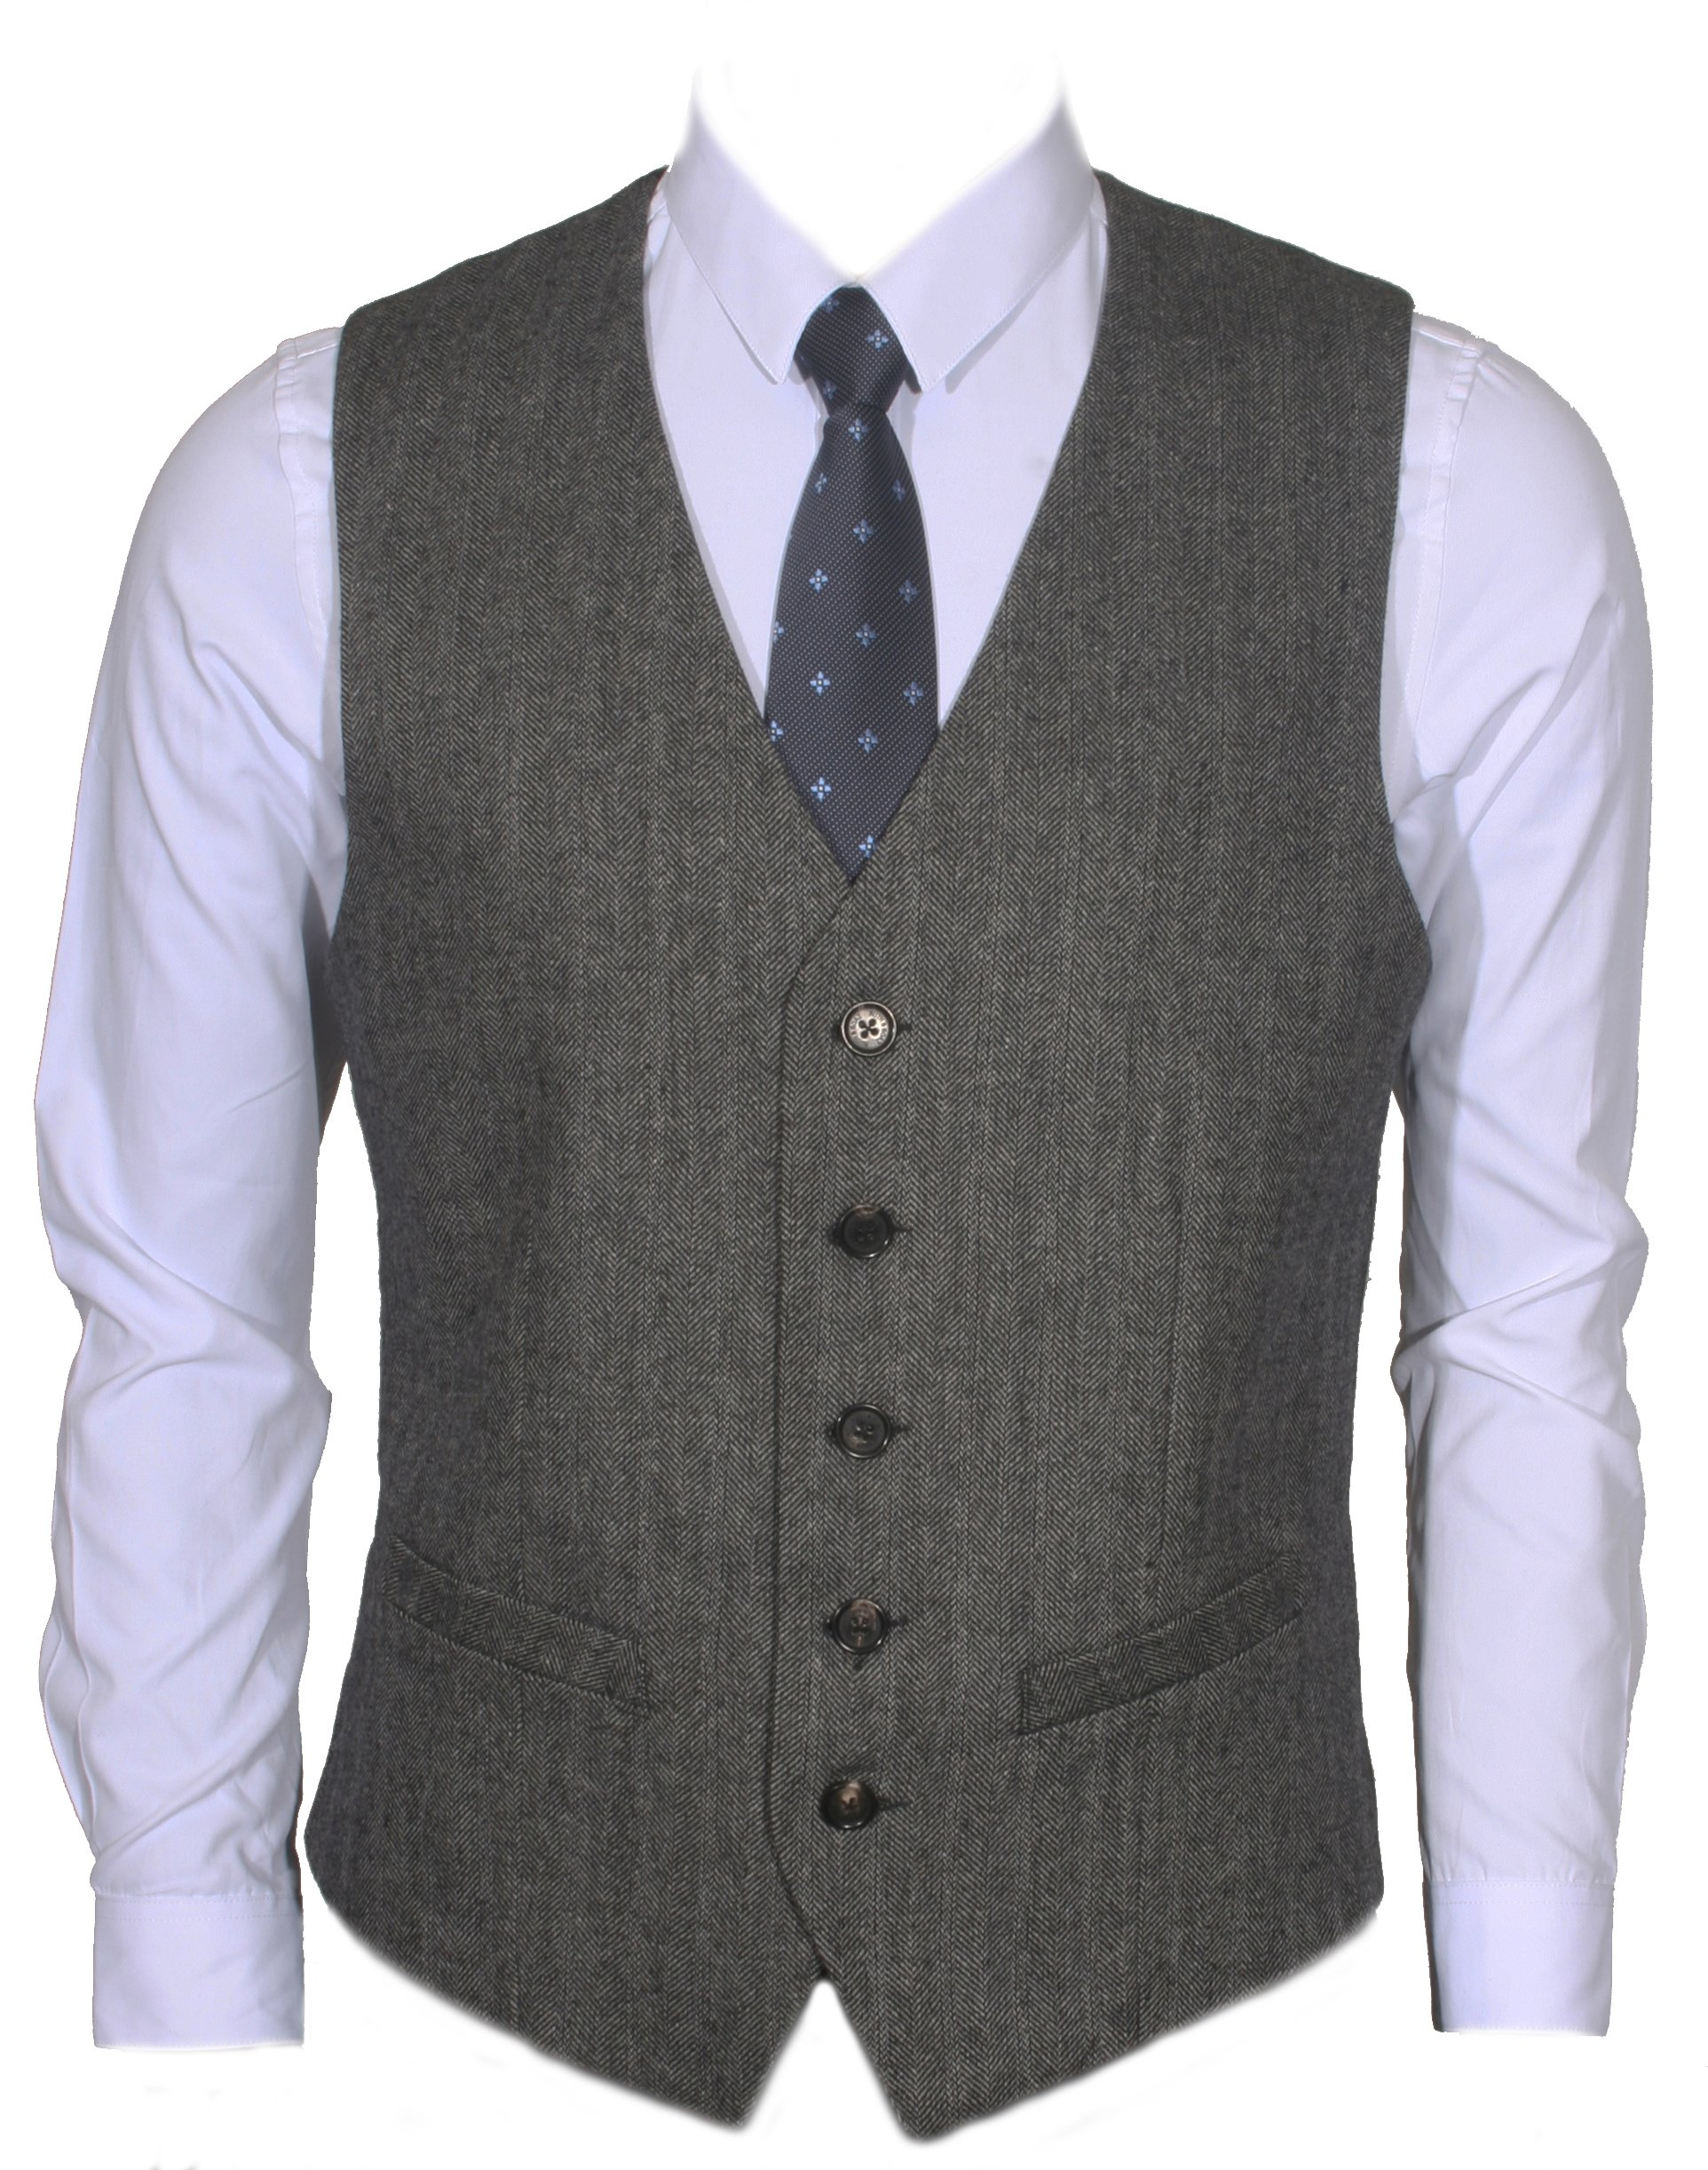 Ruth&Boaz 2Pockets 5Buttons Wool Herringbone Tweed Business Suit Vest (M, Herringbone Black) by Ruth&Boaz